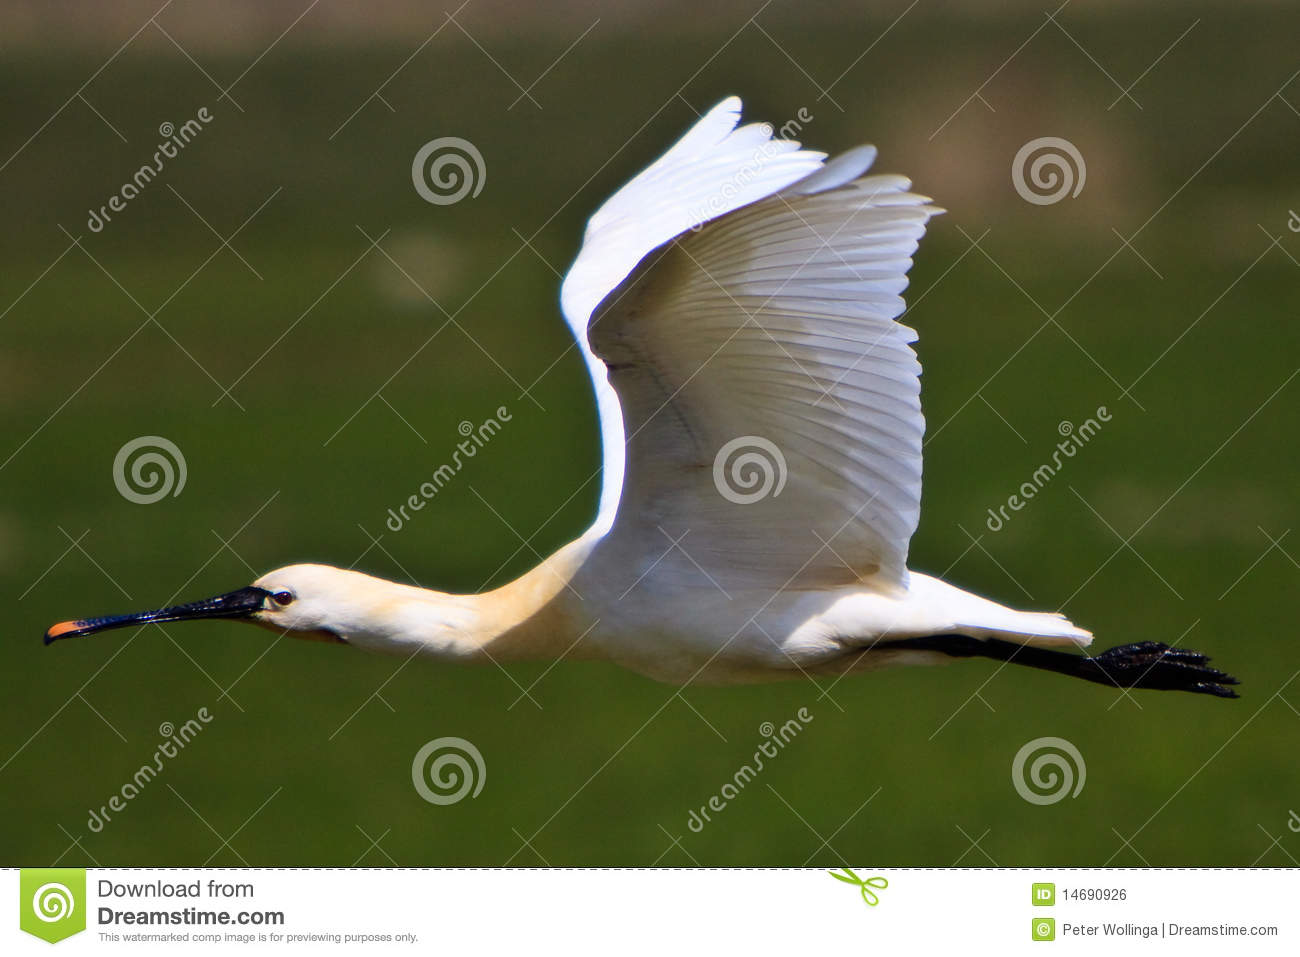 Flying Birds Free Stock Photos Download 3 416 Free Stock: Large White Spoonbill Bird Flying Stock Photo